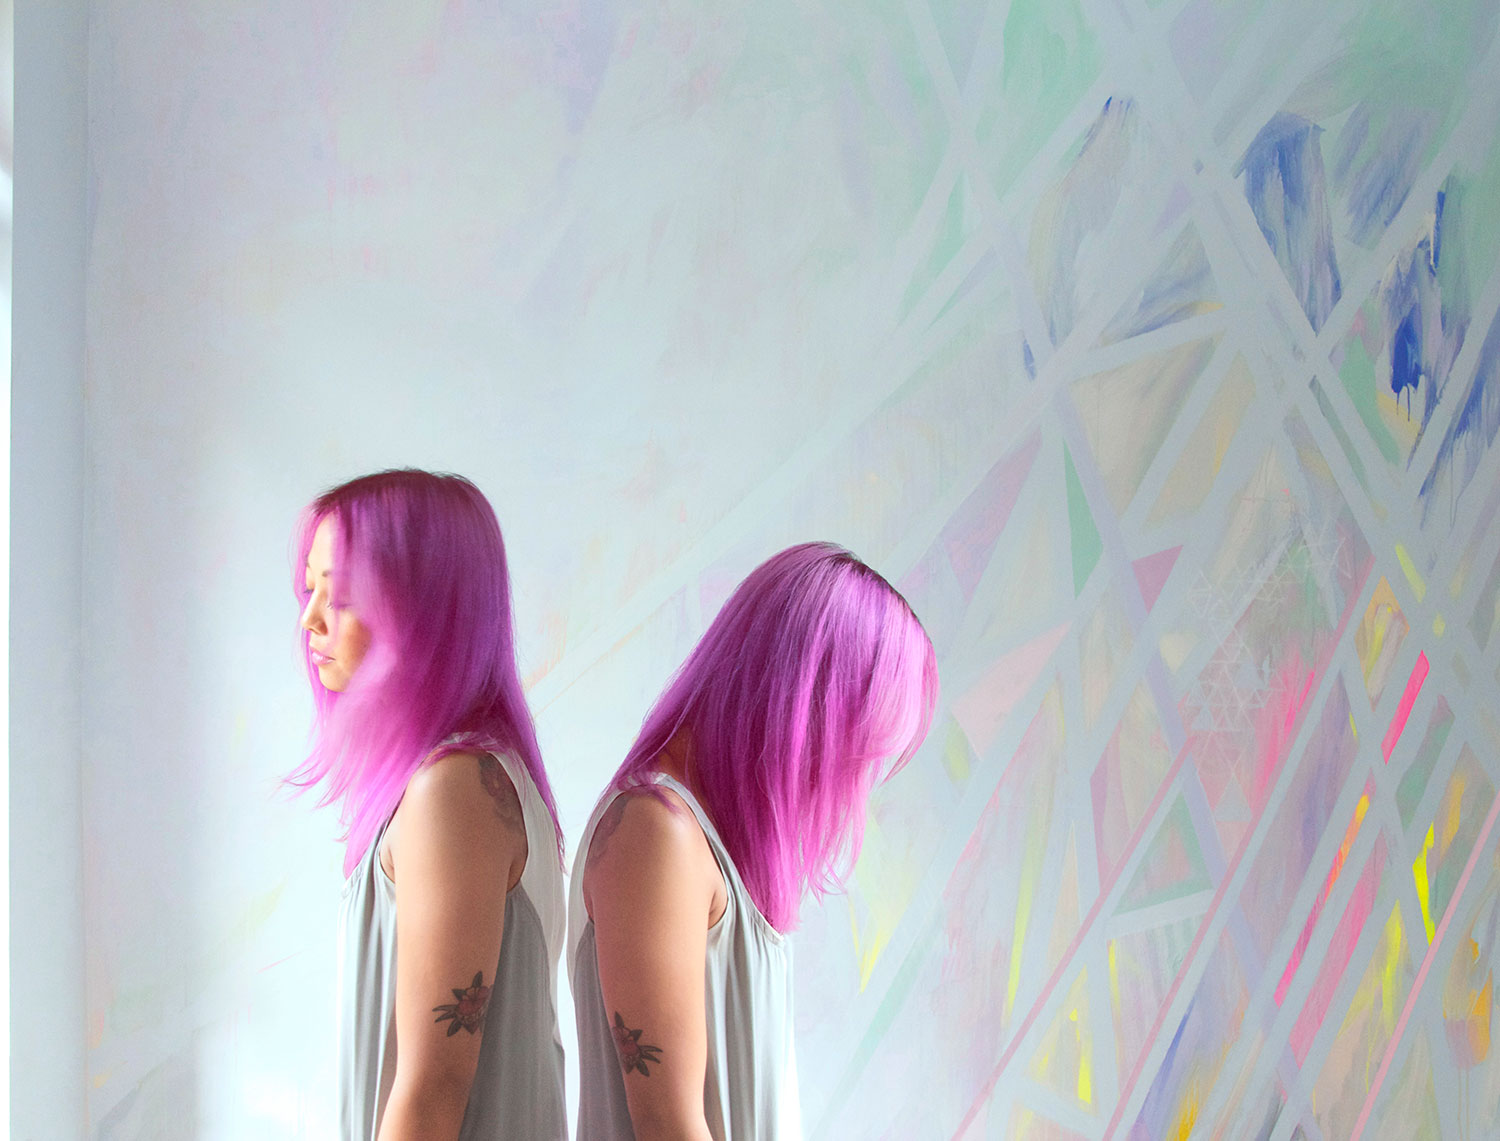 Abstract prism wall art mural painted in pastel colors located in a NYC bedroom, model has pink magenta hair, floral arm tattoo and wears a silk dress.